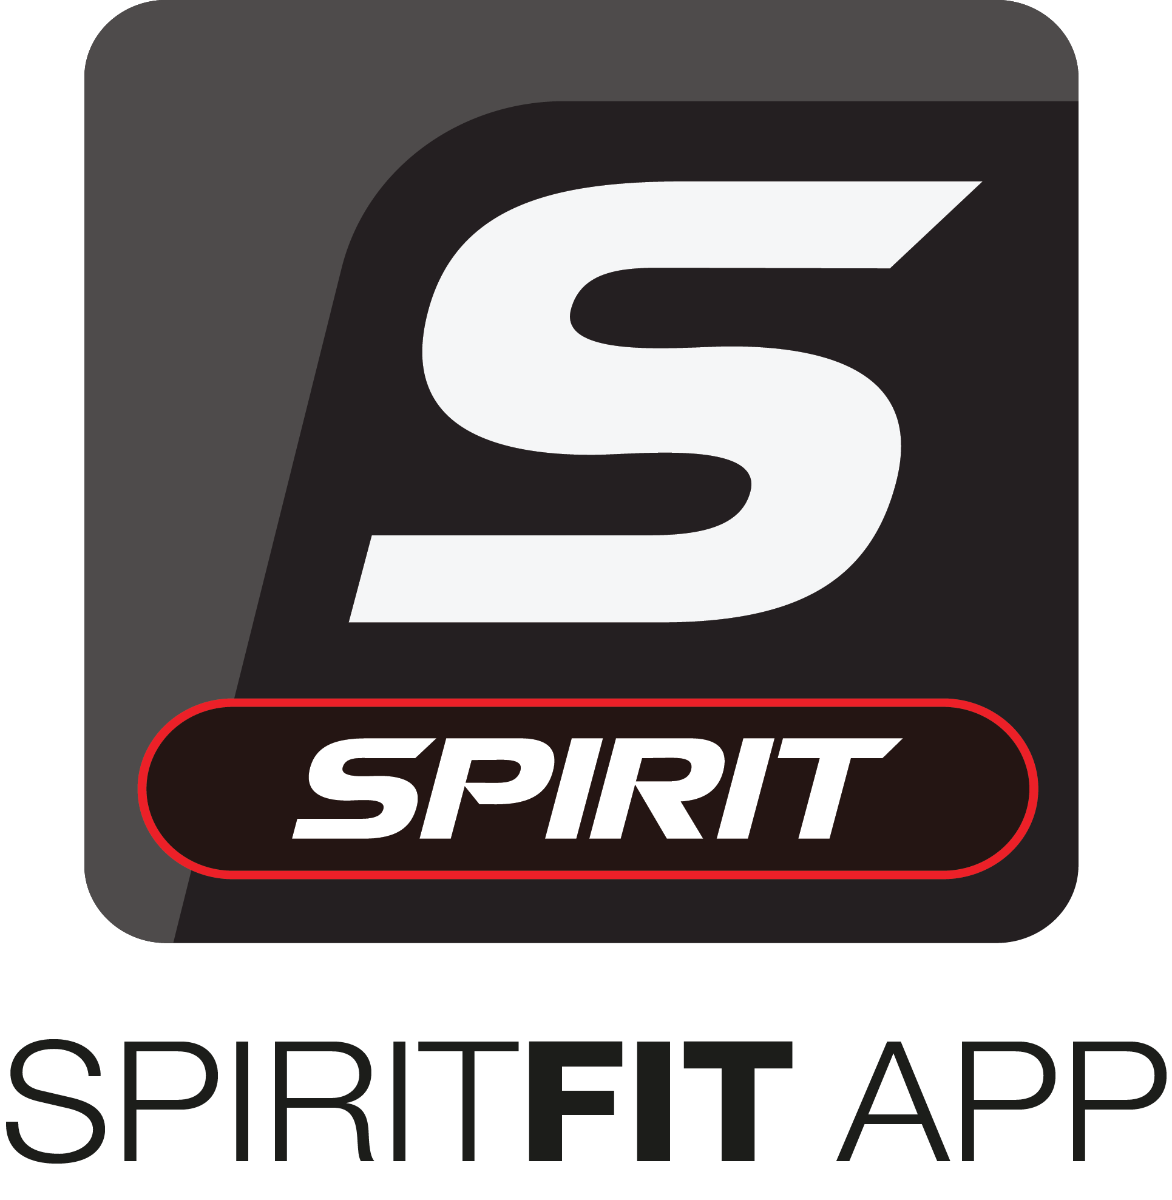 Spirit Fitness App icon with stylized S on black/grey background with the word Spirit circled in red on a black background below it.